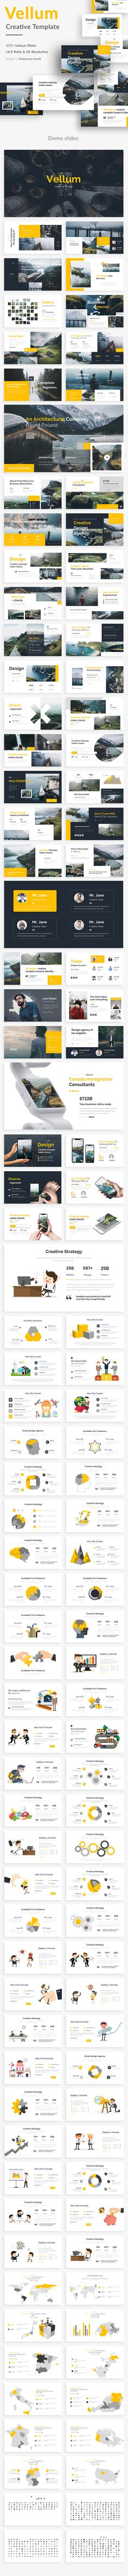 Vellum Creative Design Google Slide Template